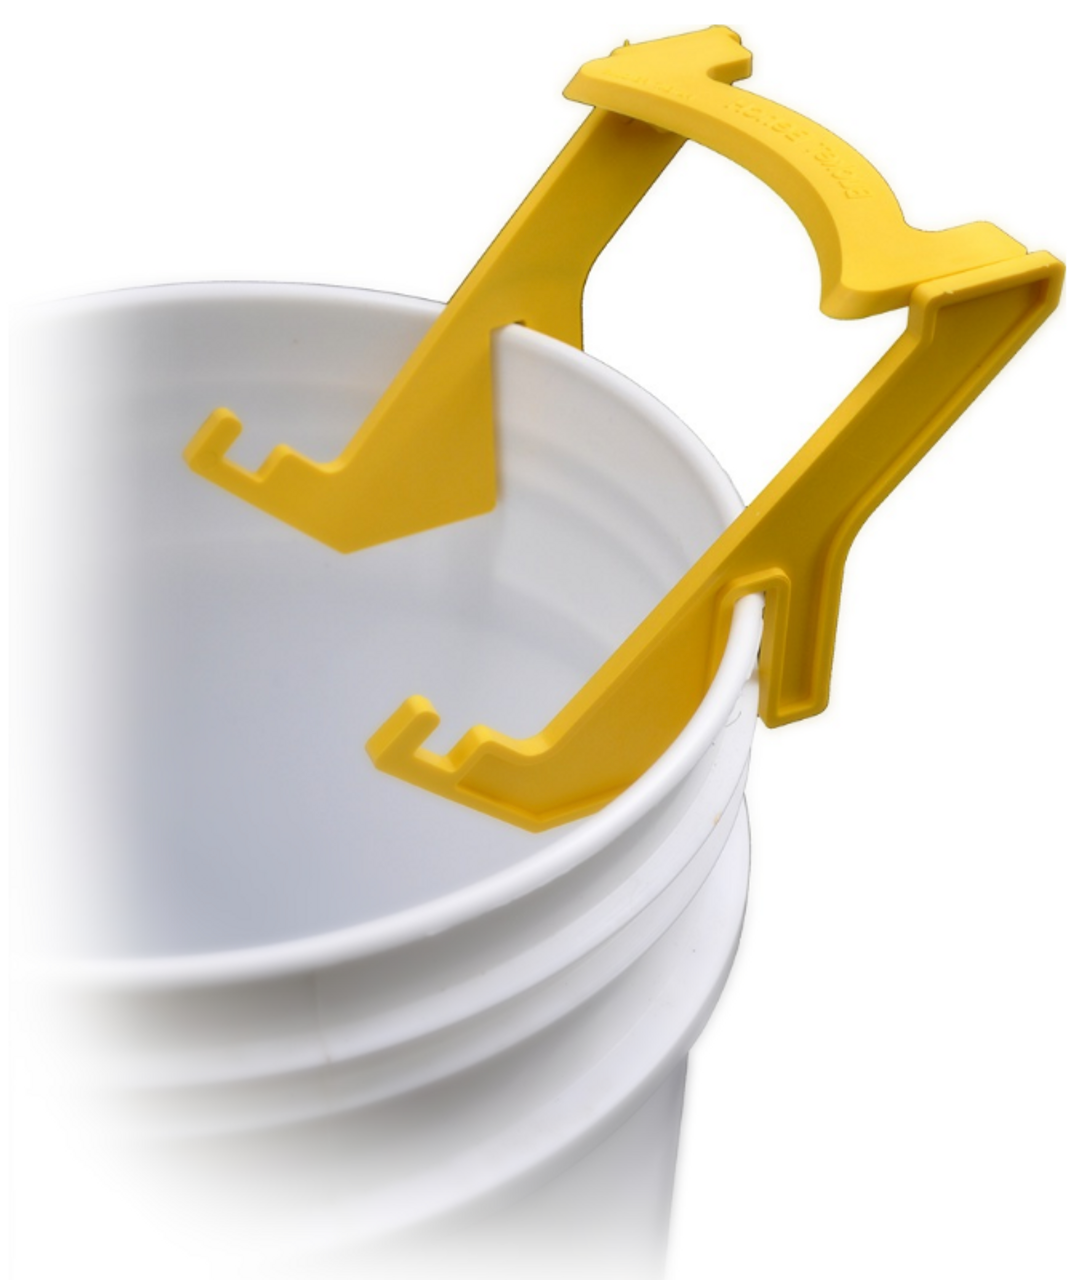 Holds 2, 3.5, 5 and 6 gallon buckets.  Pops apart for cleaning and storage.